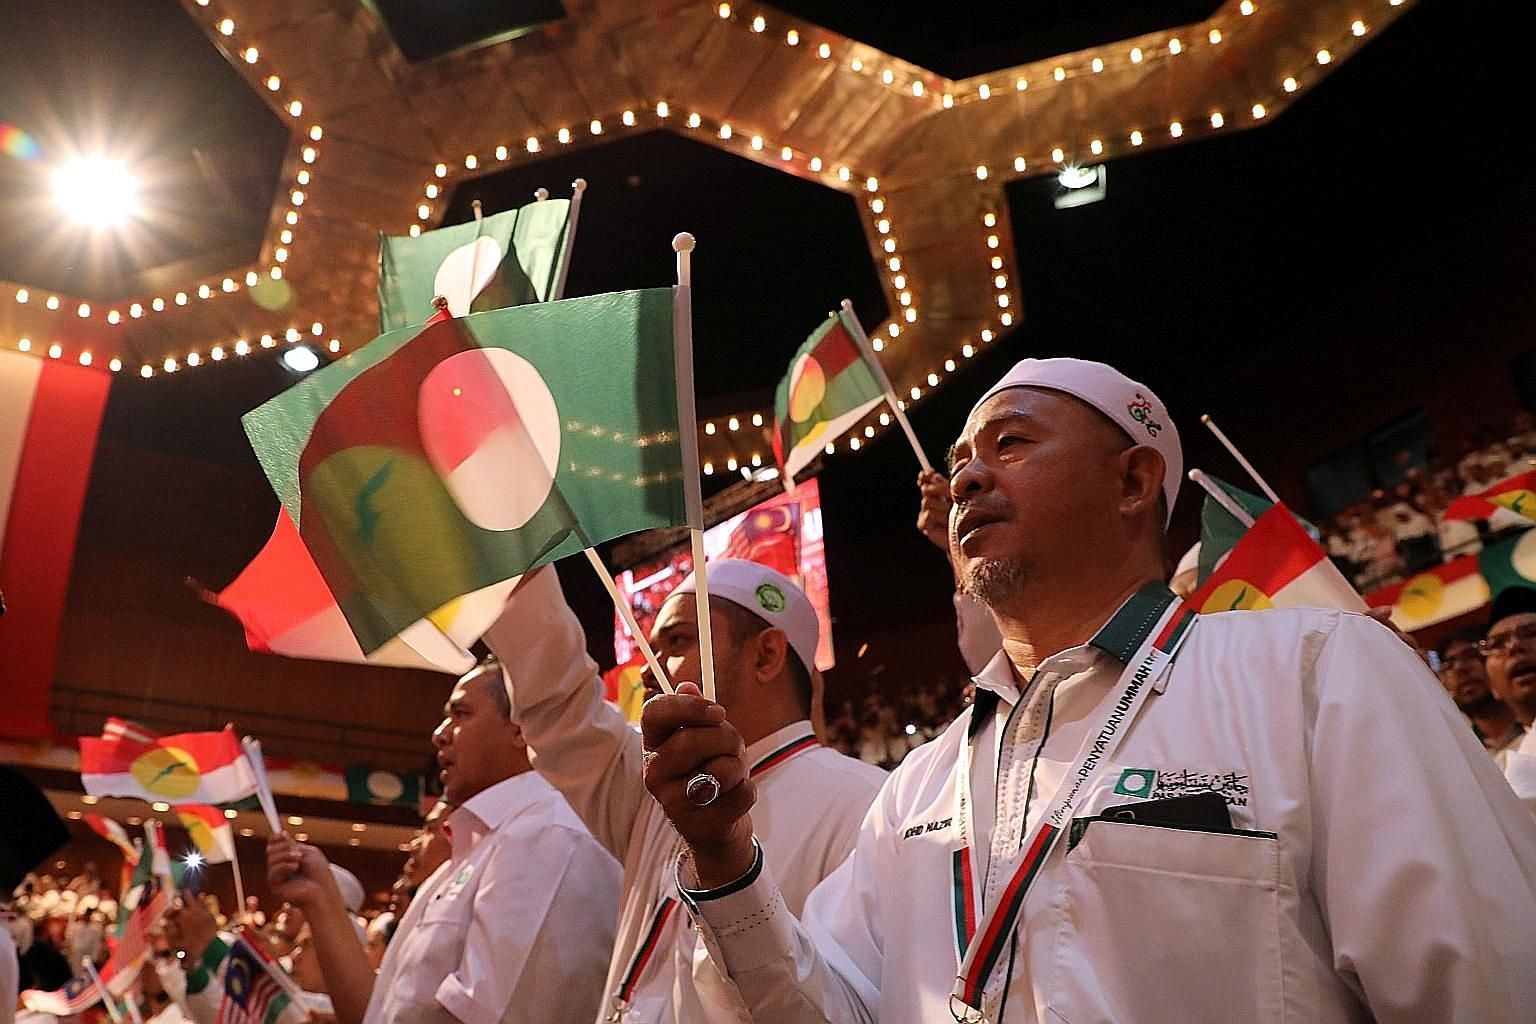 """Members of opposition parties Umno and Parti Islam SeMalaysia (PAS) at the Muslim Unity Gathering in Umno's PWTC headquarters in Kuala Lumpur on Saturday. PAS president Hadi Awang described the gathering as a """"family affair"""", although party members a"""